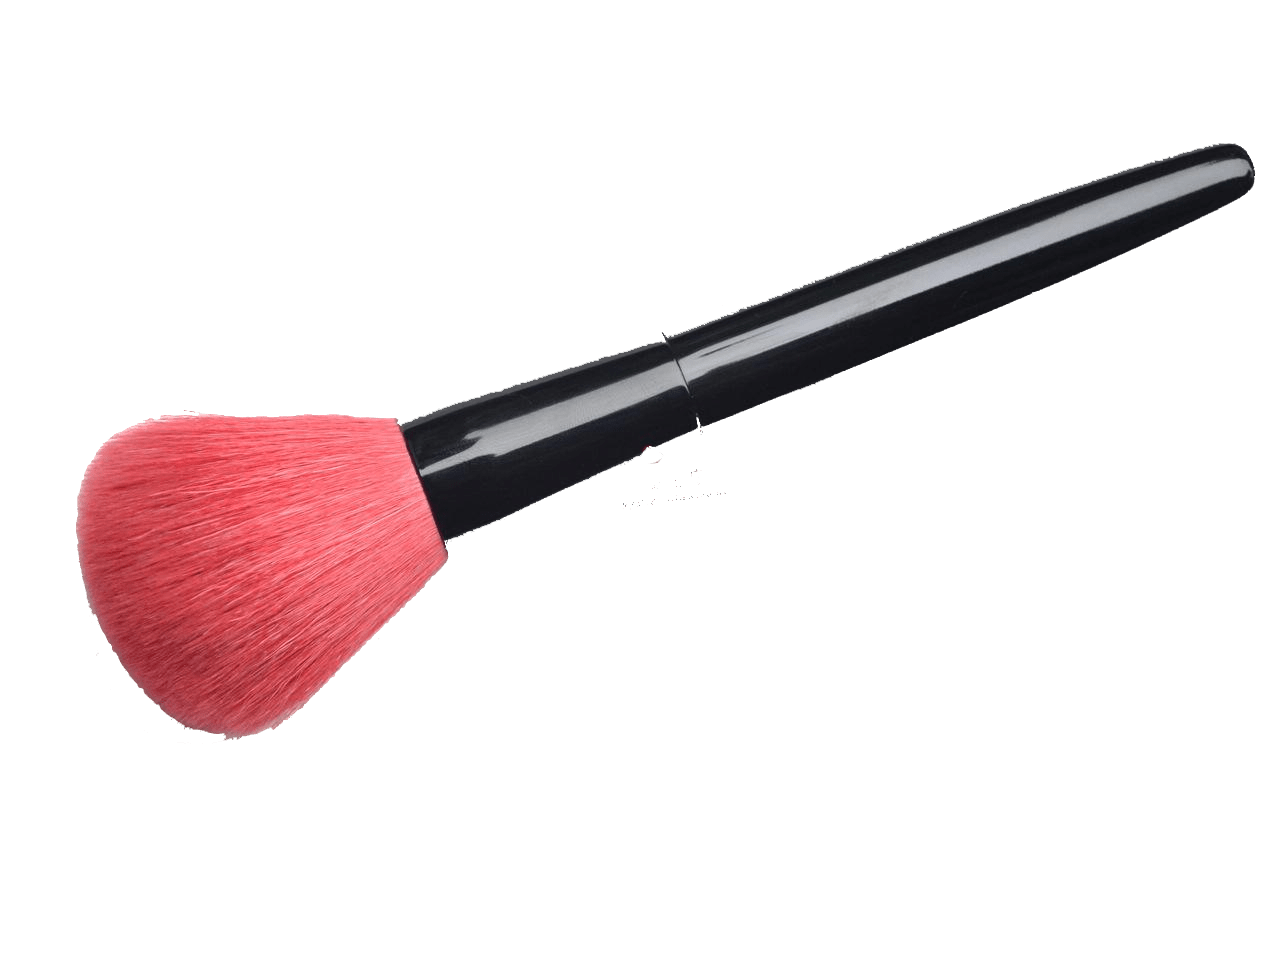 Brush clipart makeup. Pink transparent png stickpng